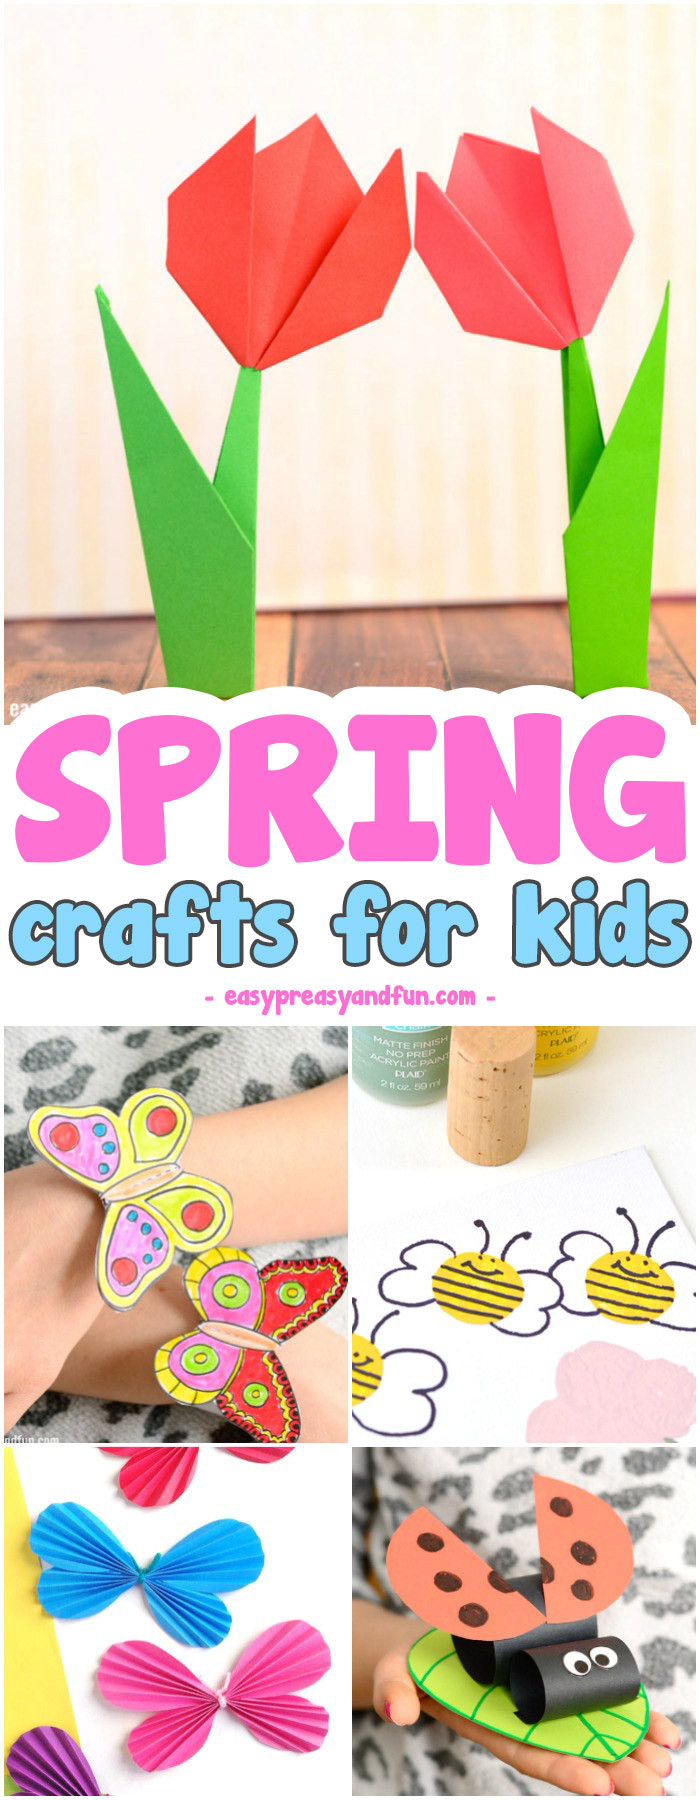 Arts And Crafts For Preschoolers  Spring Crafts for Kids Art and Craft Project Ideas for